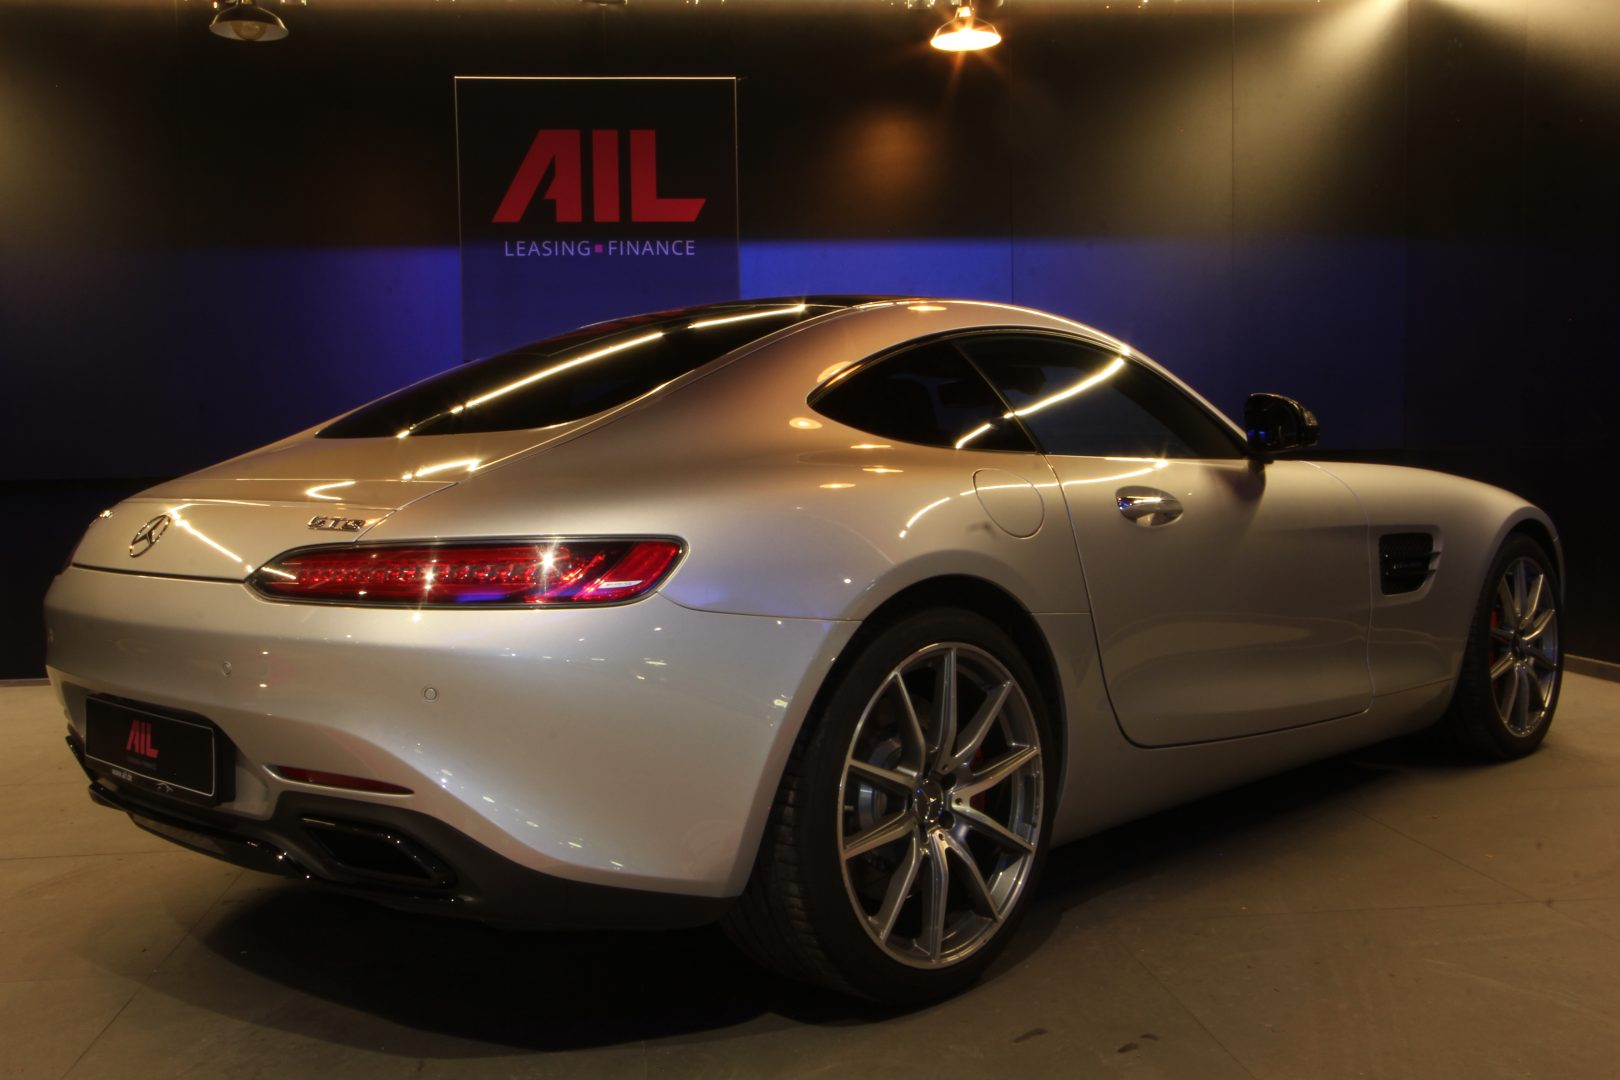 AIL Mercedes-Benz AMG GT S Coupe 1